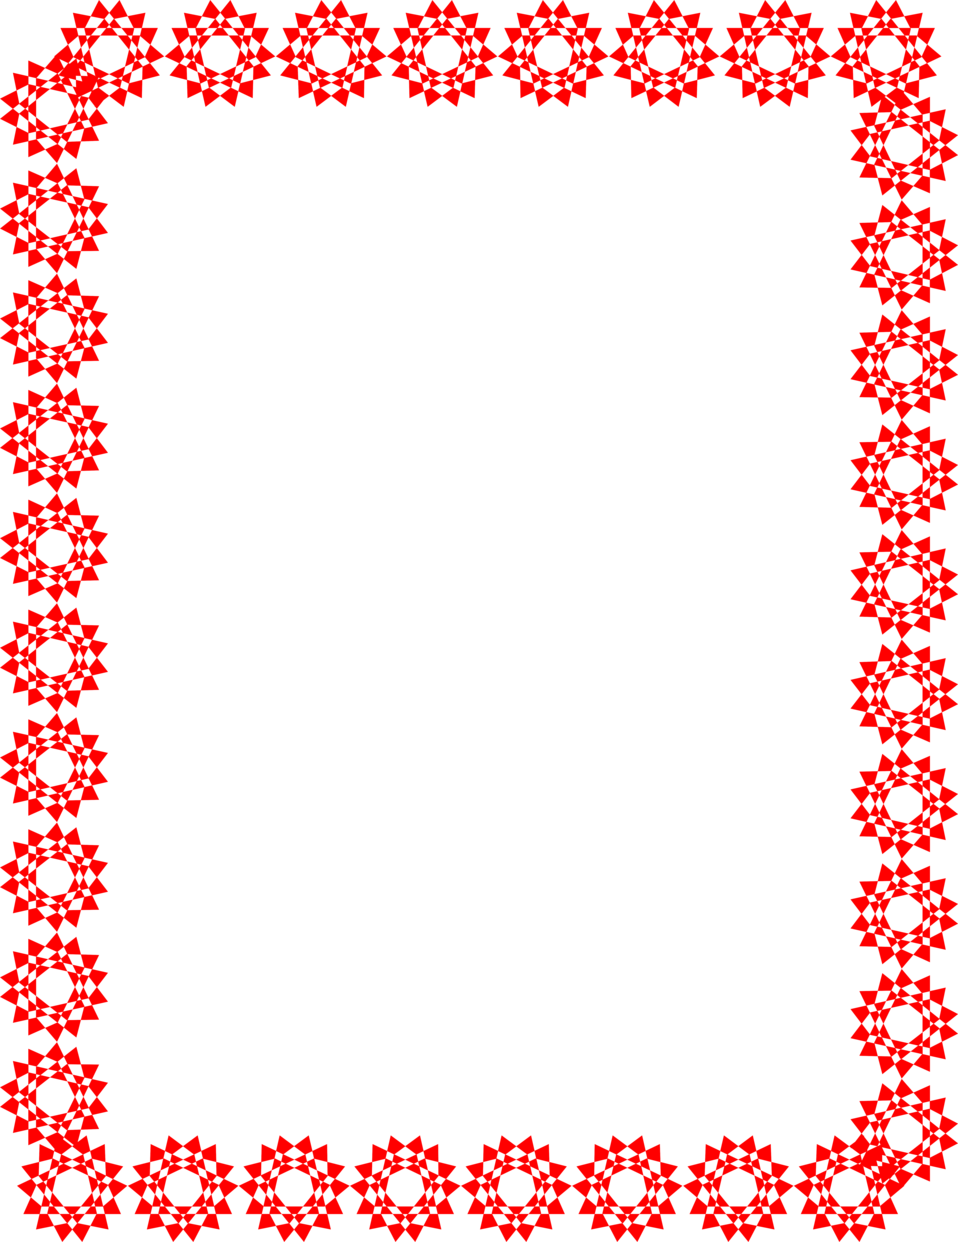 Red star frame clipart clipart transparent Border | Free Stock Photo | Illustration of a blank frame border of ... clipart transparent